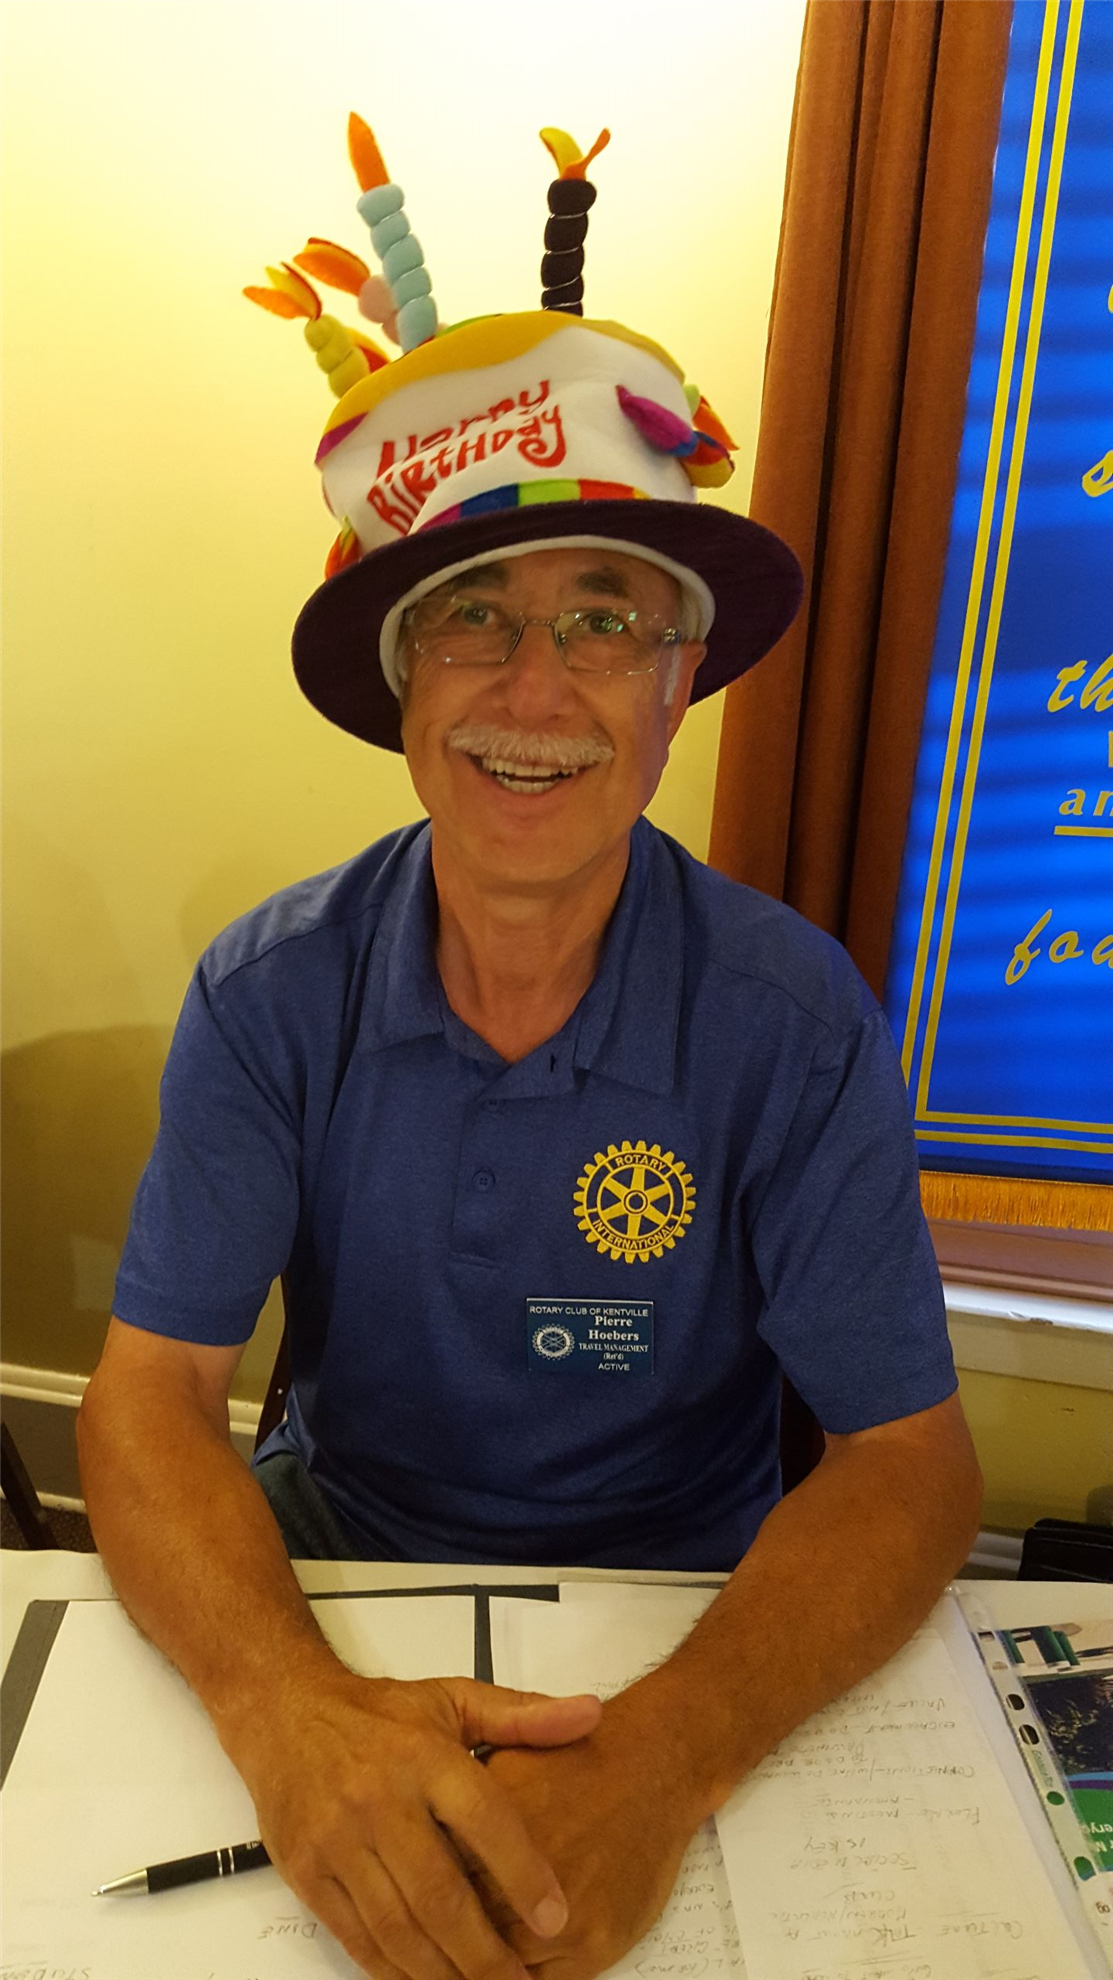 Stories Rotary Club Of Kentville District 7820 Tendencies Caps Savage Navy As It Turns Out Was Pierres Bd Today 70yrs Young So He Begrudginly Wore The Hat And That Took Care Our Singing